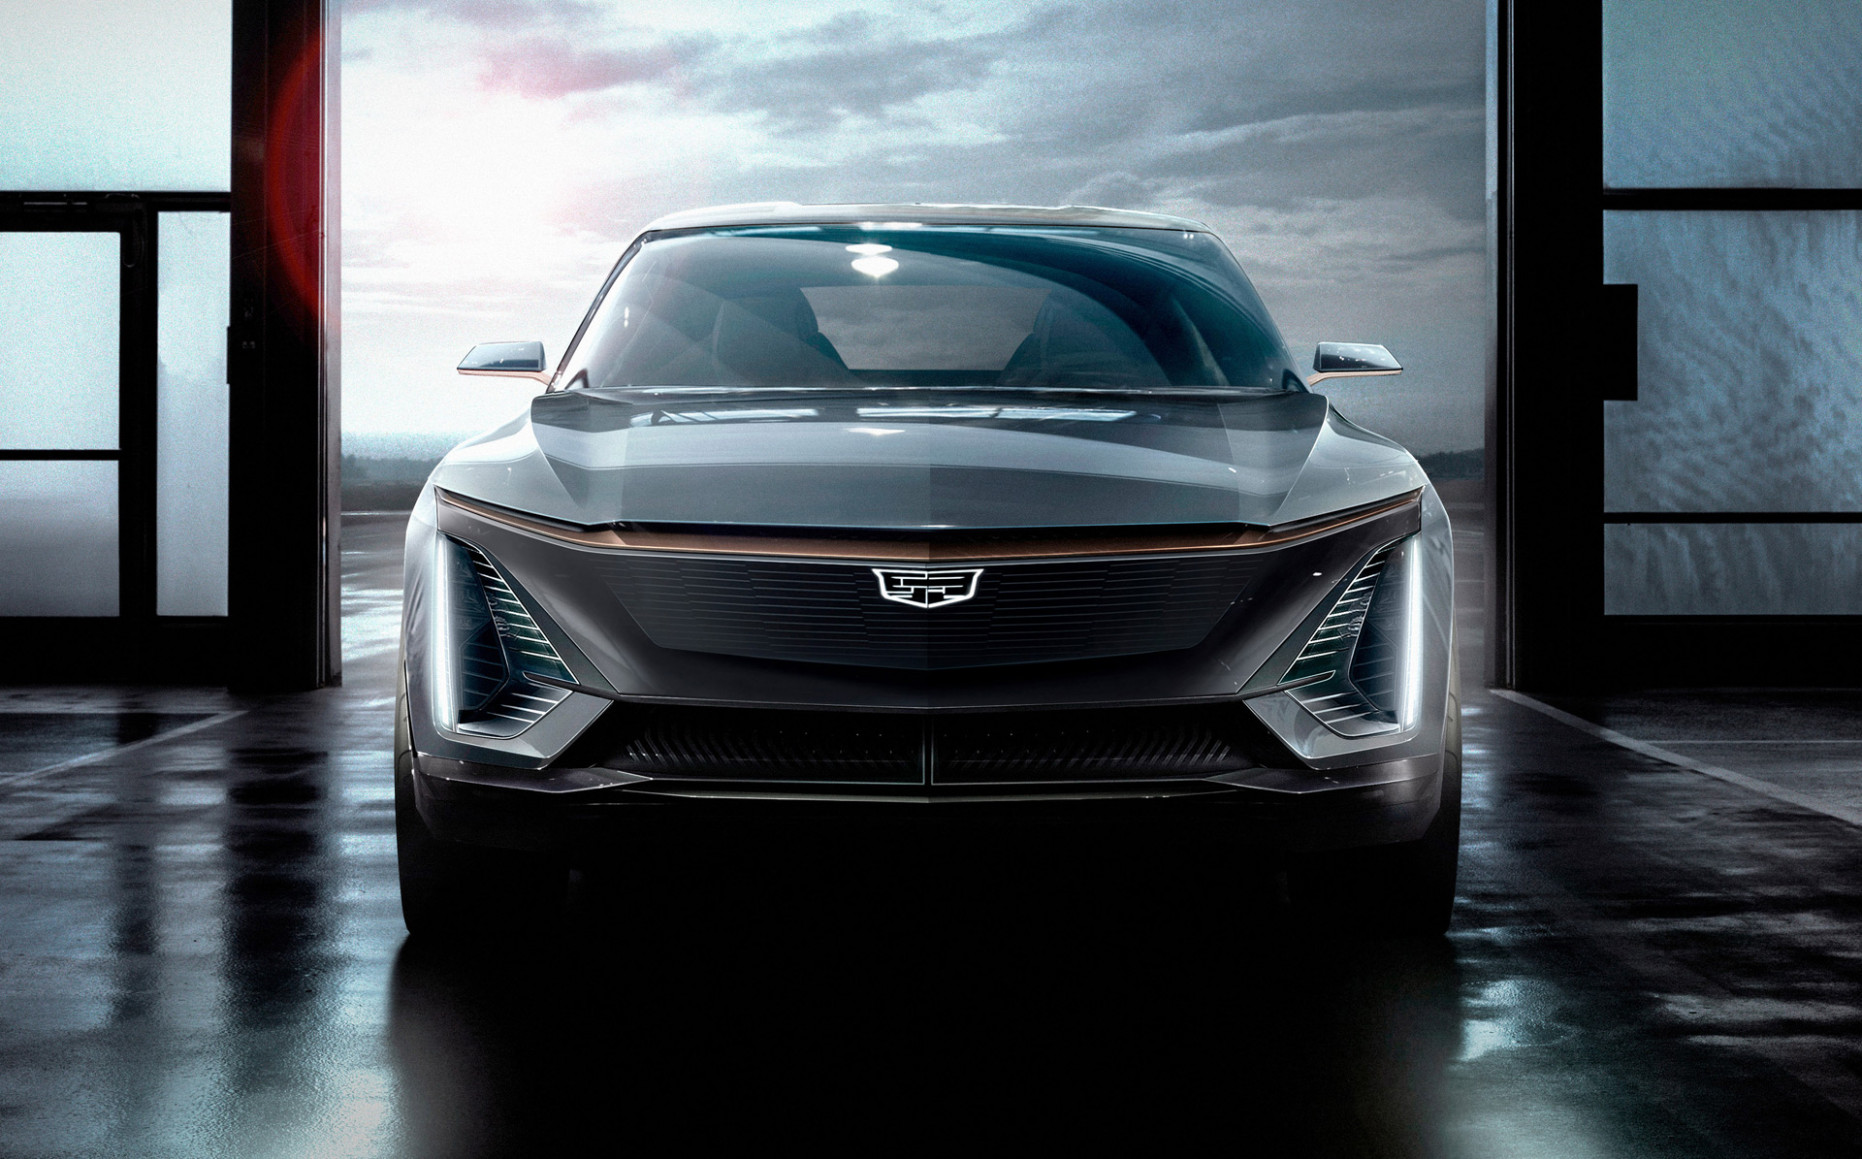 Rumors 2022 Cadillac Deville Coupe